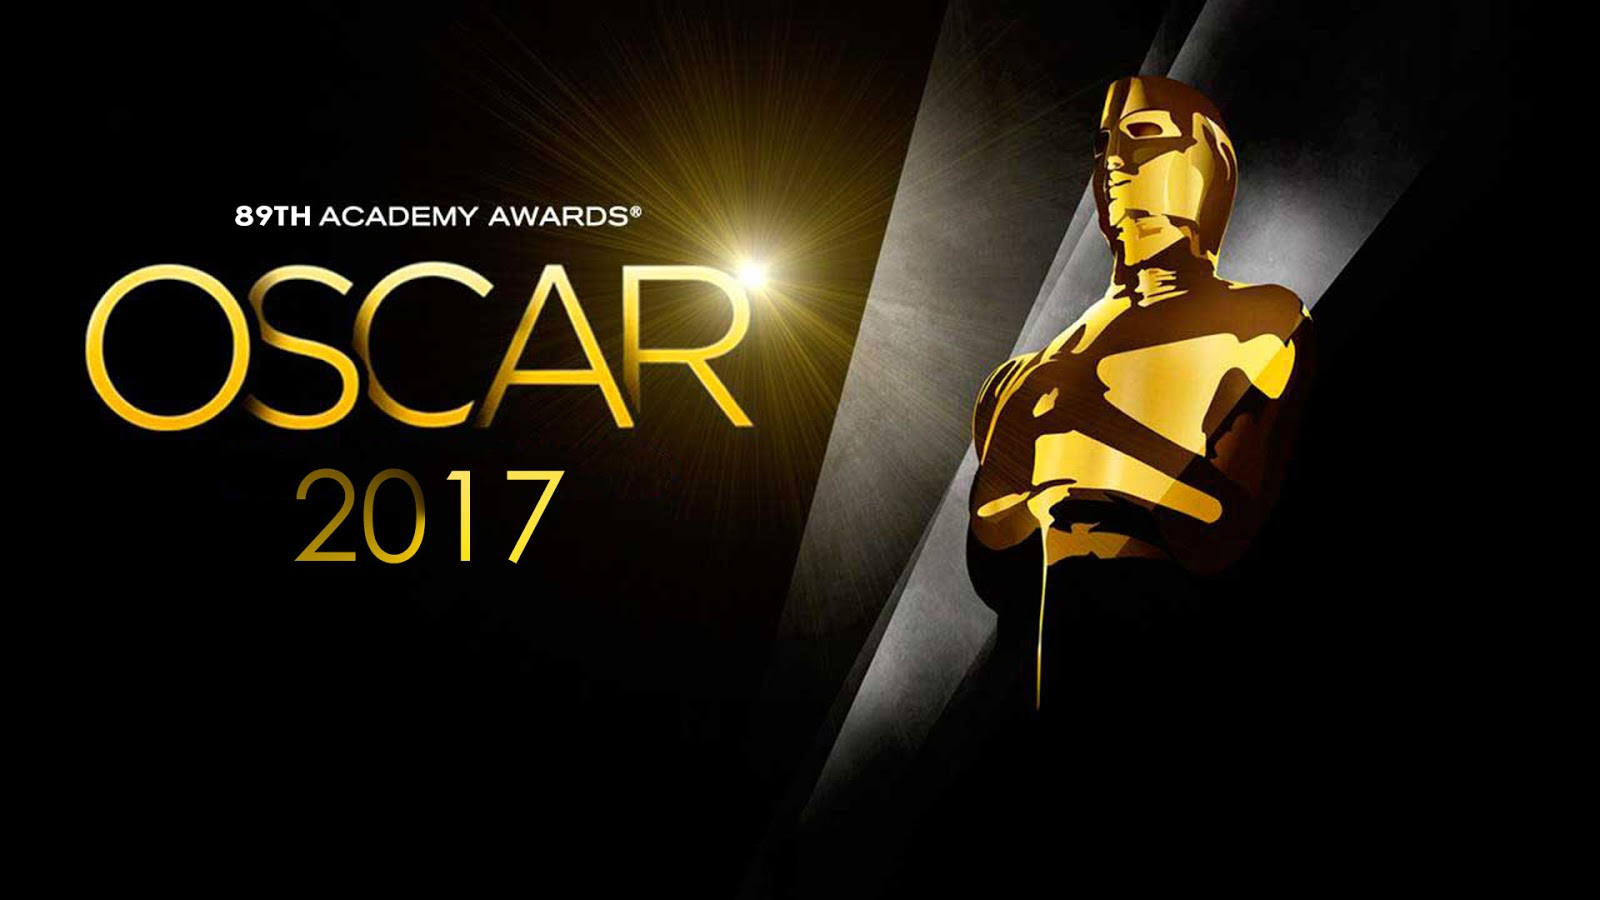 The Academy Awards air February 26th, 2017 at 8pm